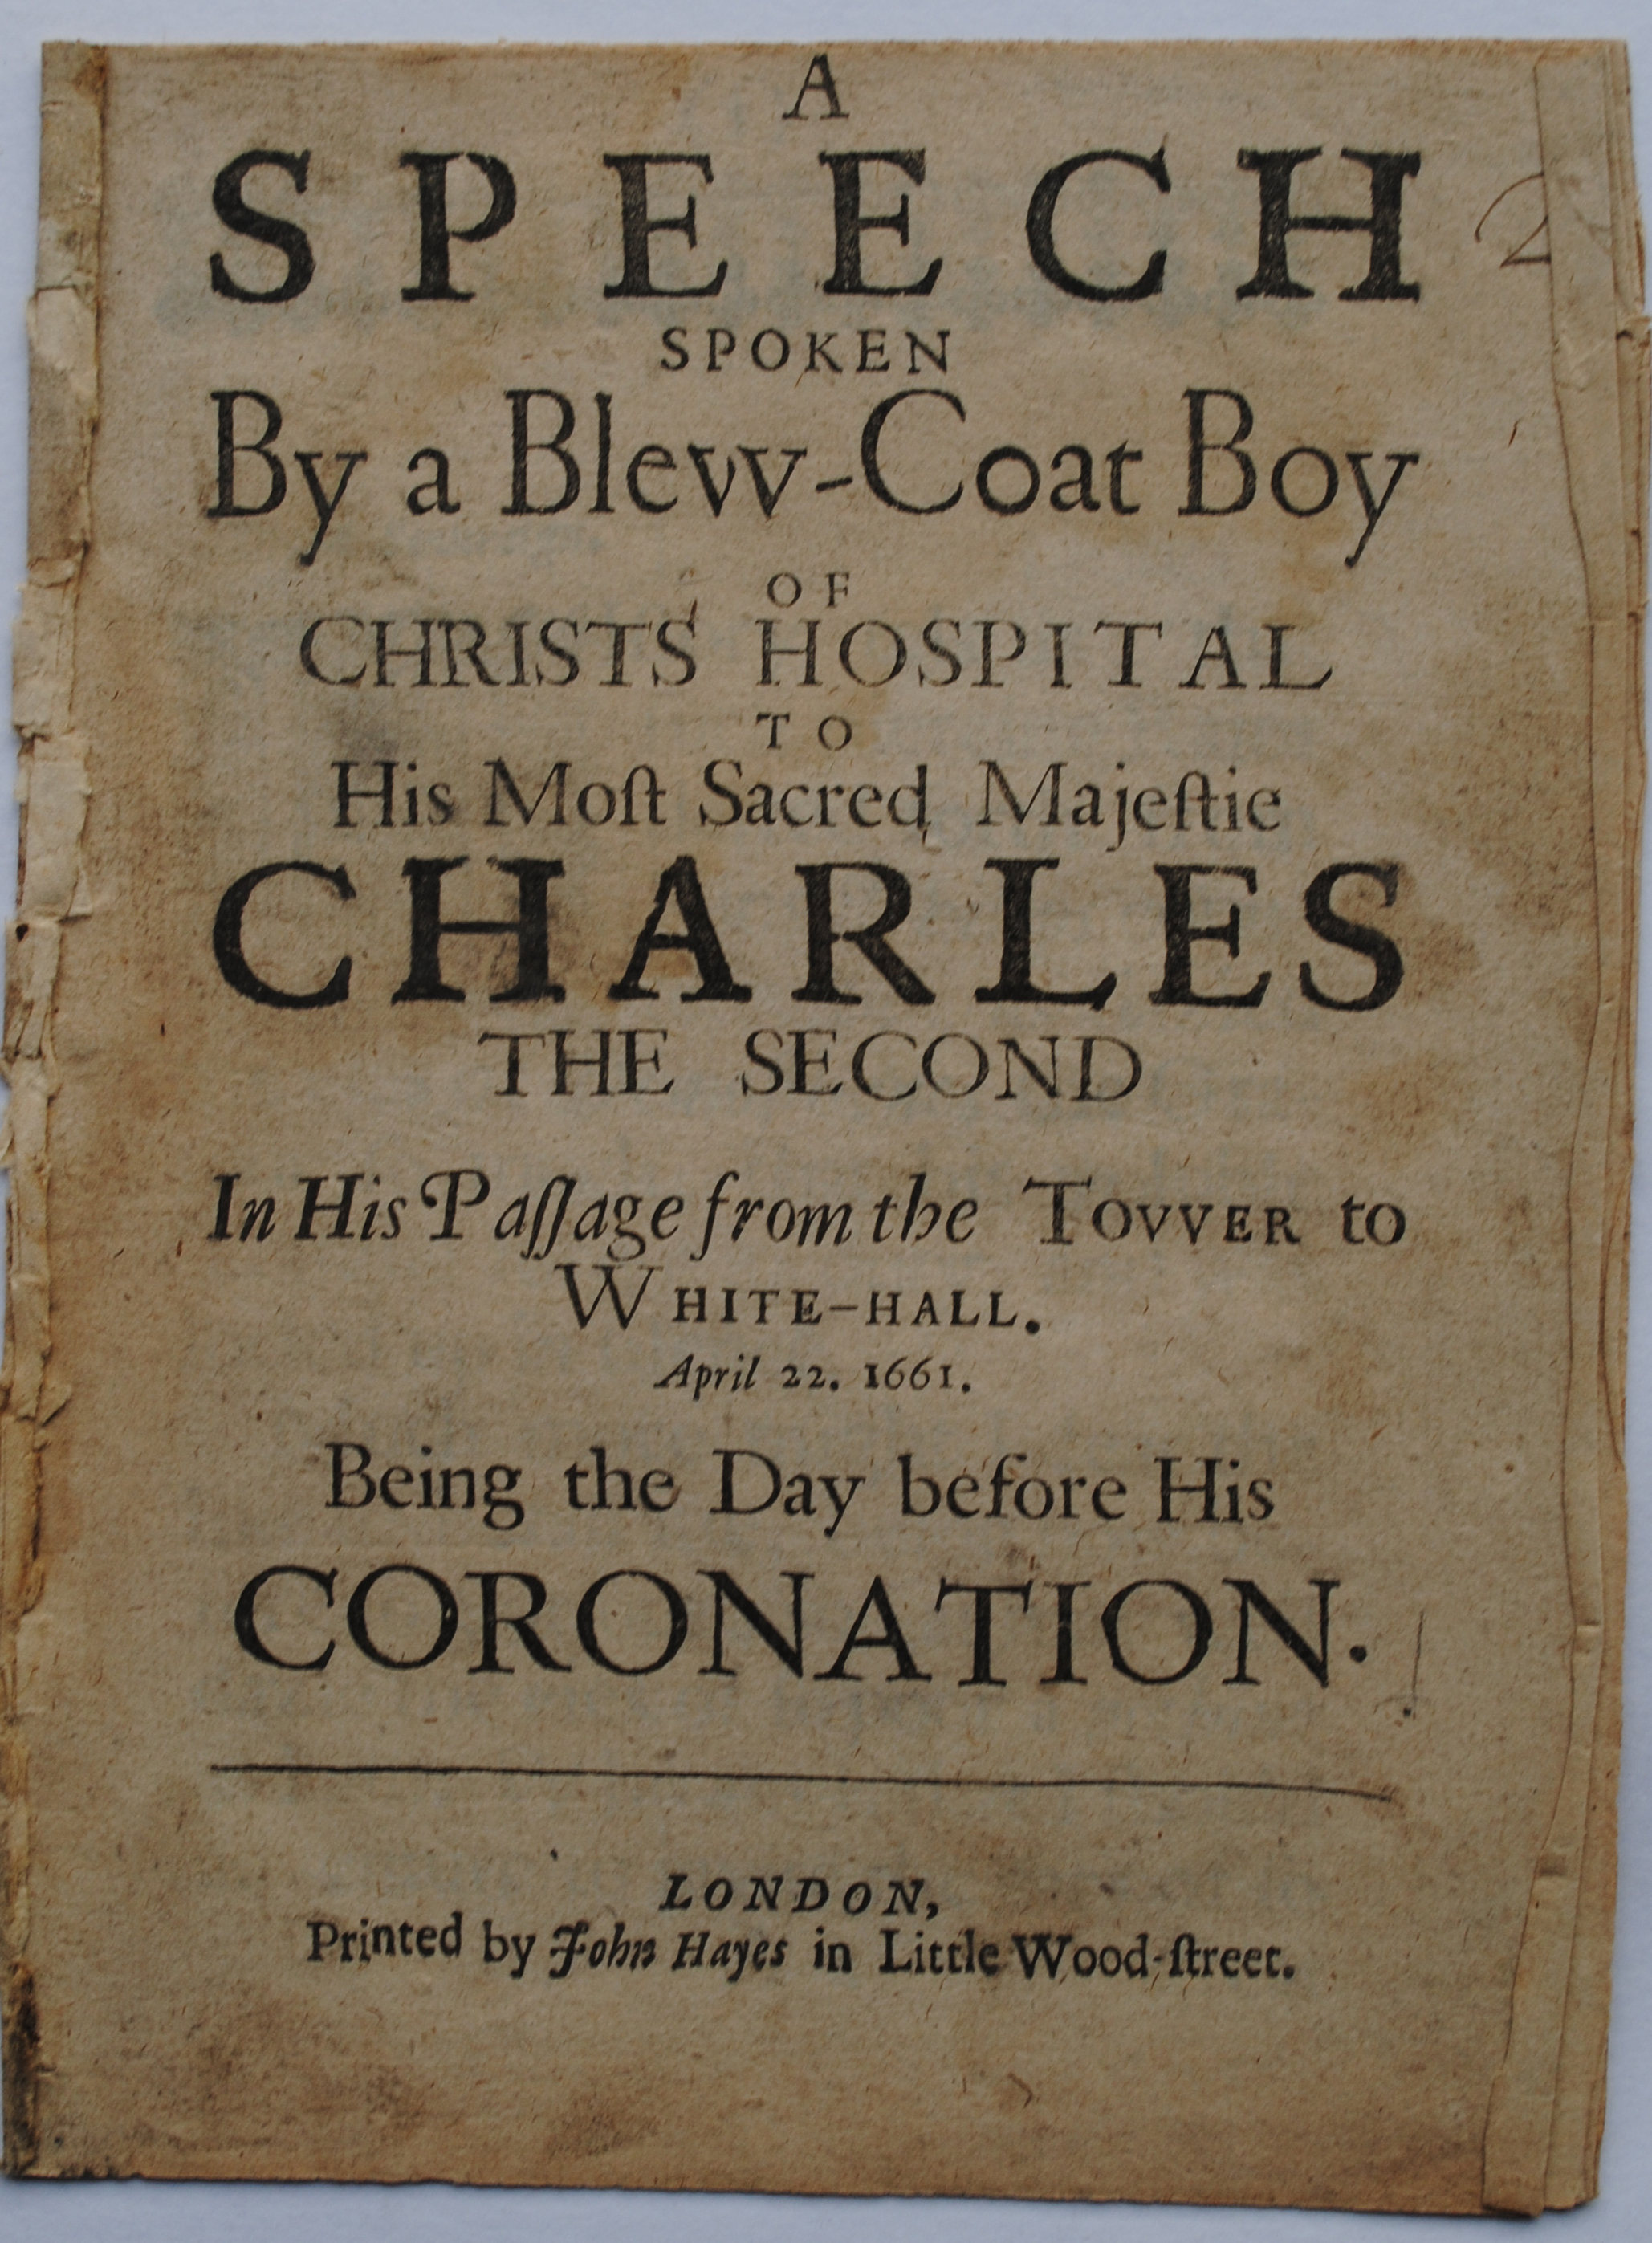 Loyal address to Charles II 1661